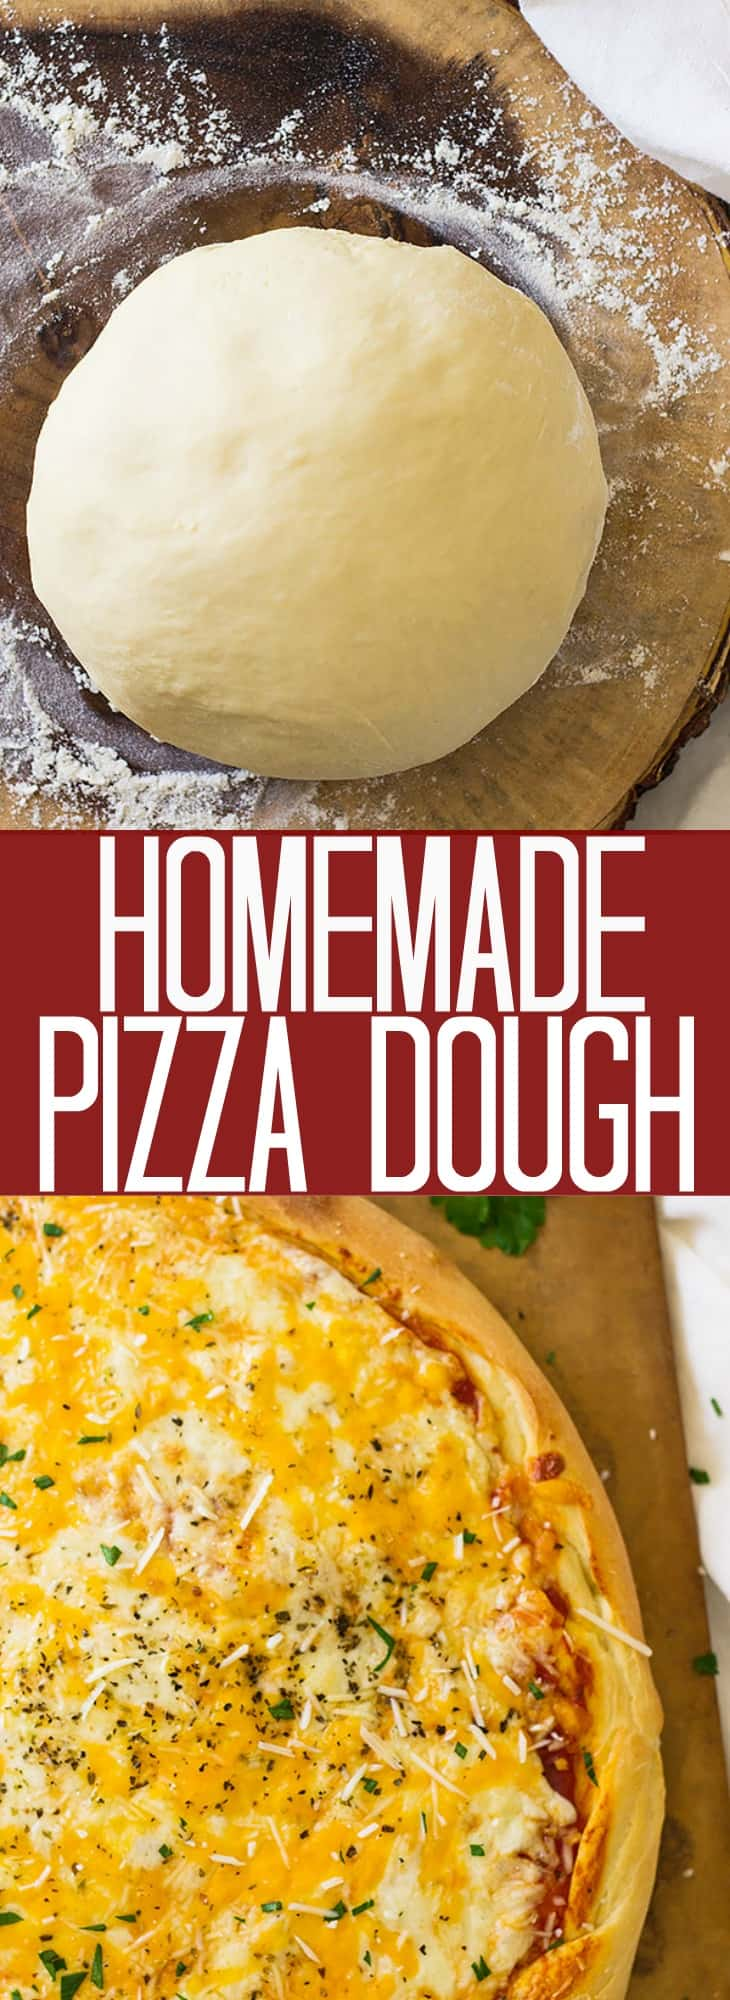 This Homemade Pizza Dough will give you a nice thick and chewy crust. It is a great basic pizza dough! | www.countrysidecravings.com